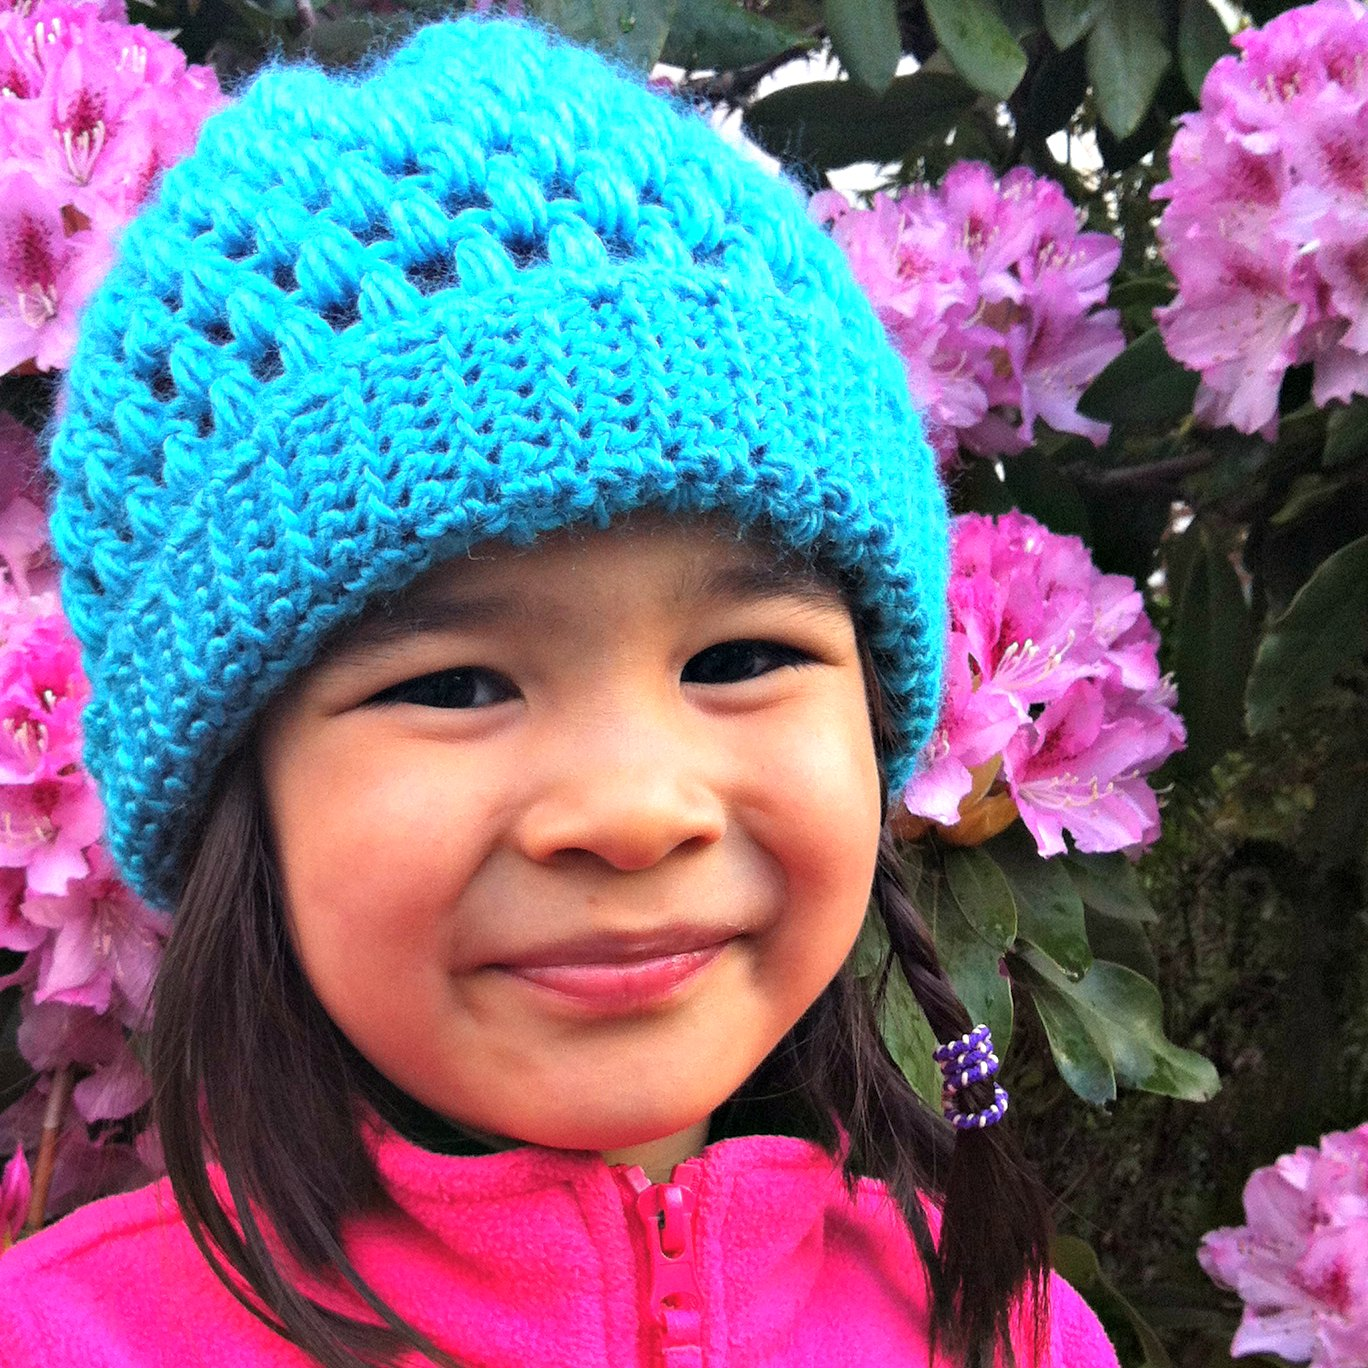 Sew Creative Crocheted Kids Slouch Hat Pattern- Great for Beginners ... 9023103955b